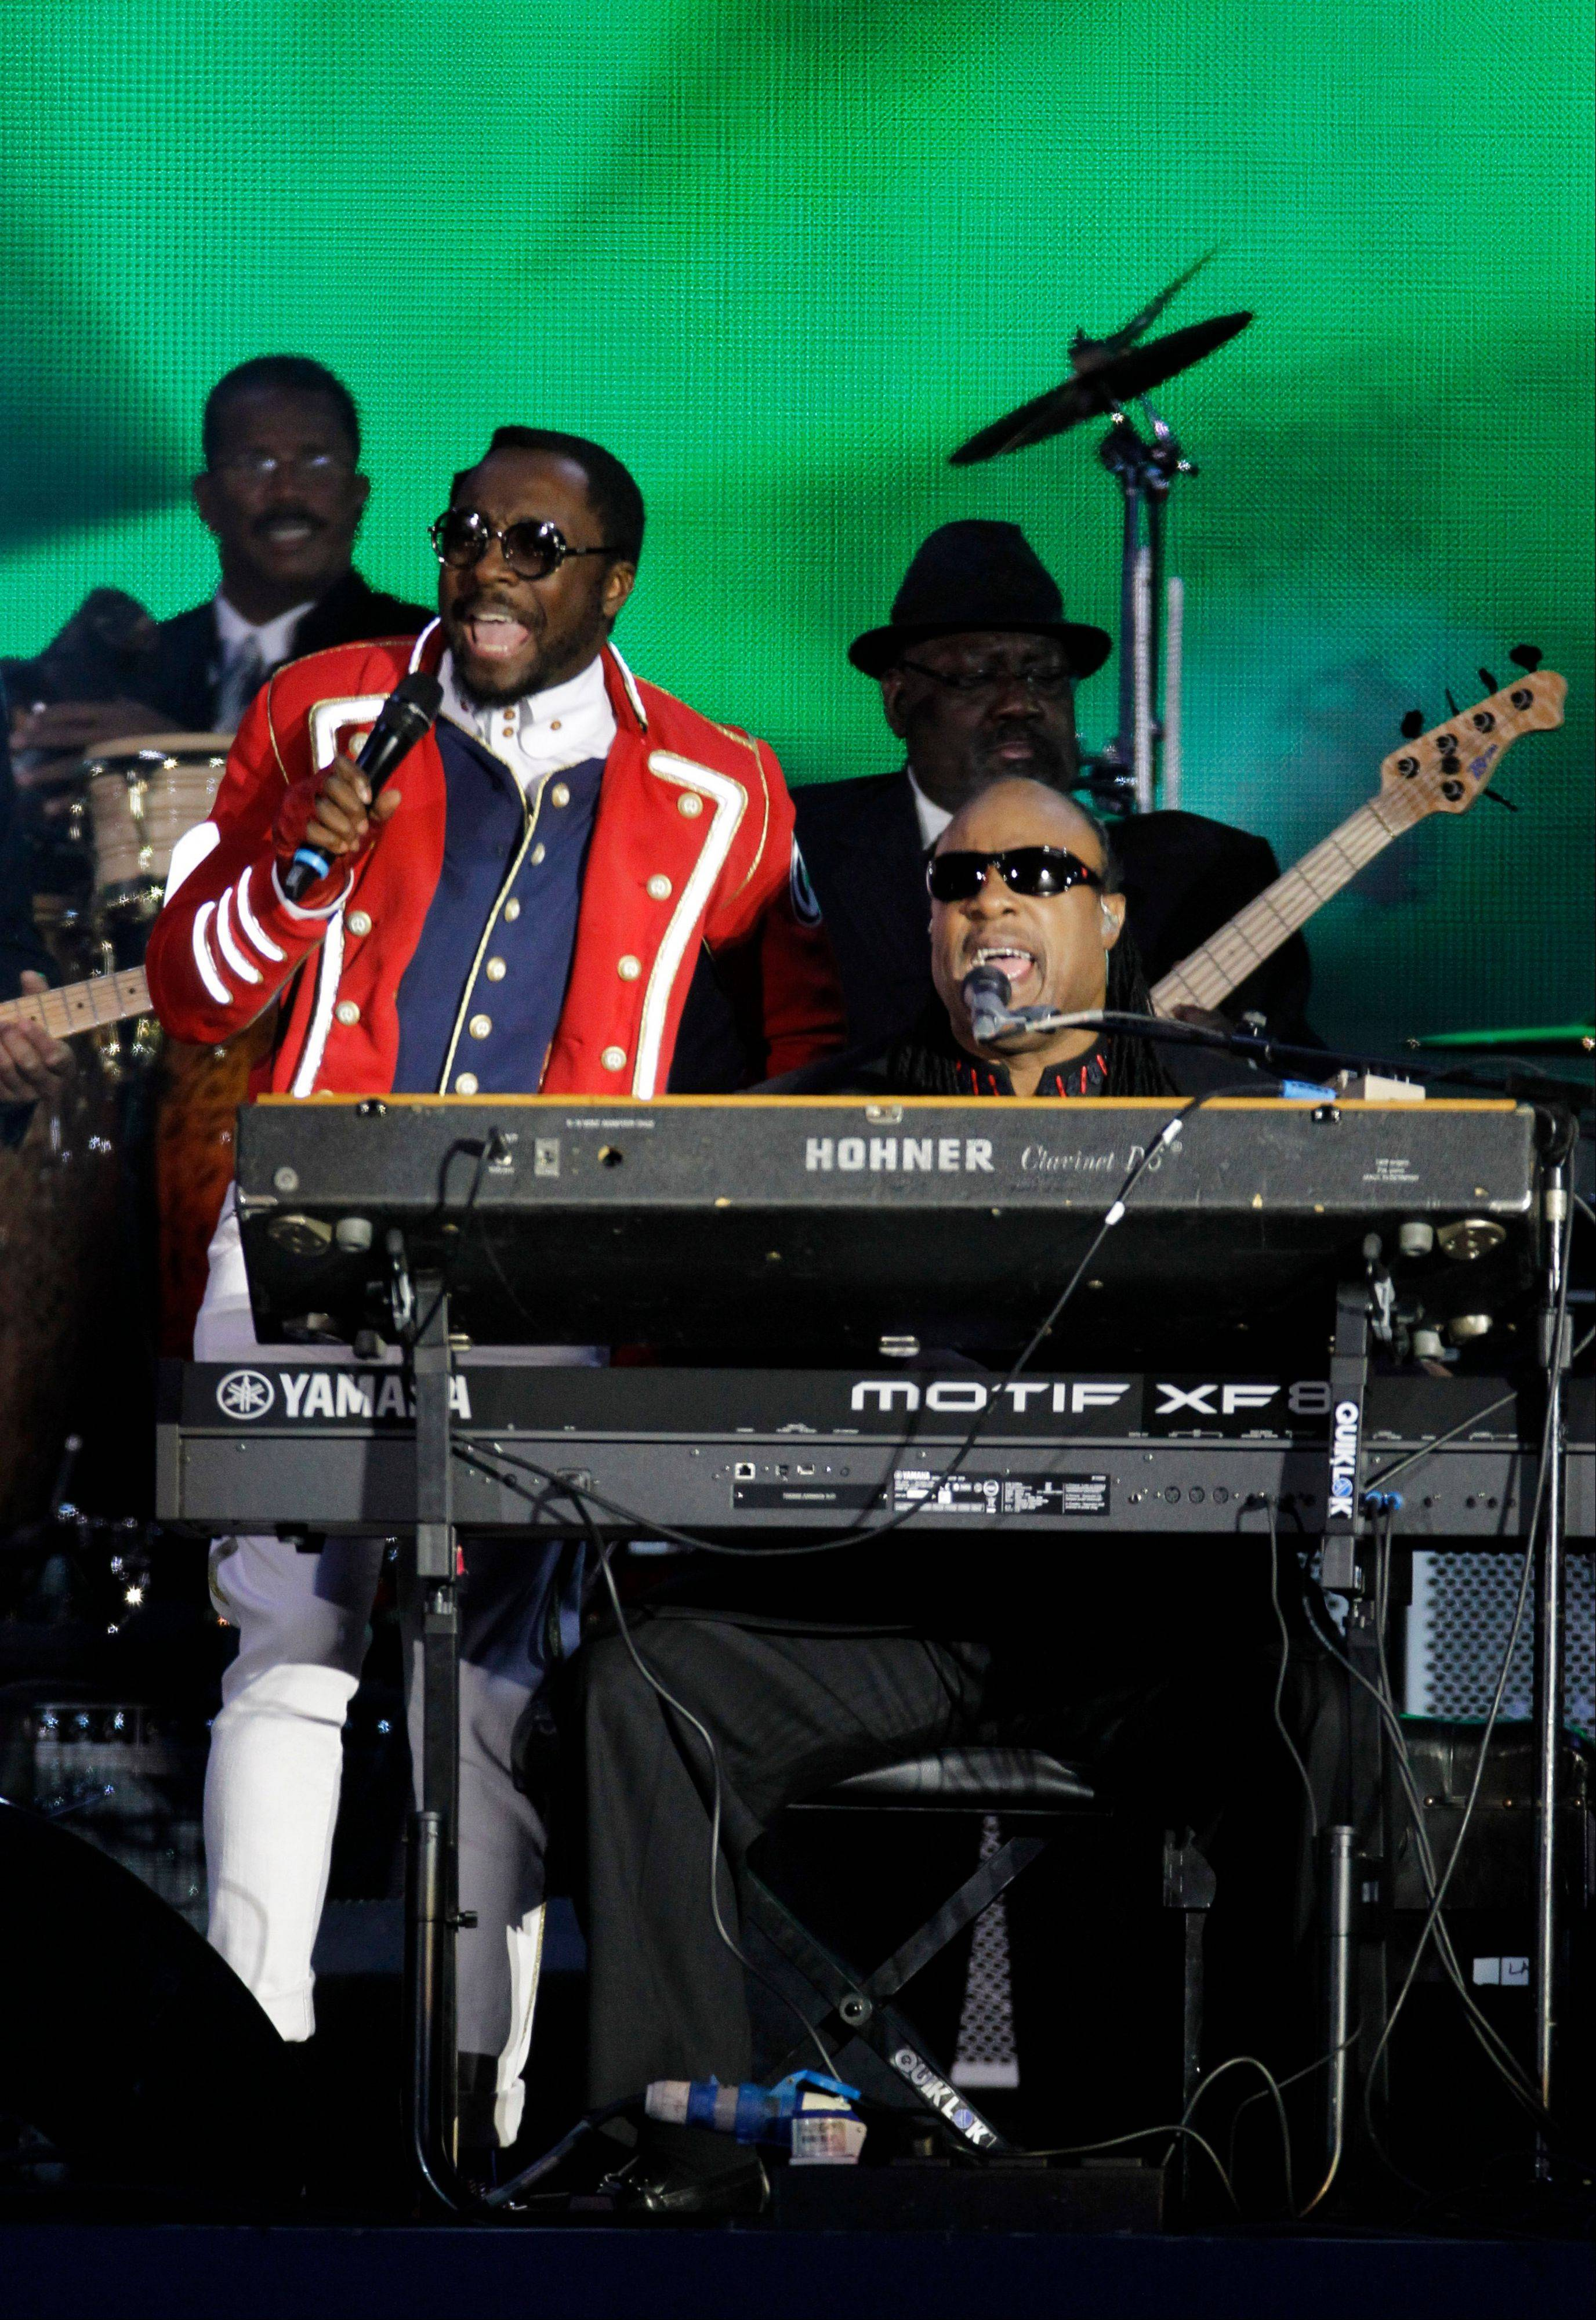 Will.i.am and Stevie Wonder perform at the Queen's Jubilee Concert in front of Buckingham Palace, London, Monday, June 4, 2012. The concert is a part of four days of celebrations to mark the 60-year reign of Britain's Queen Elizabeth II.